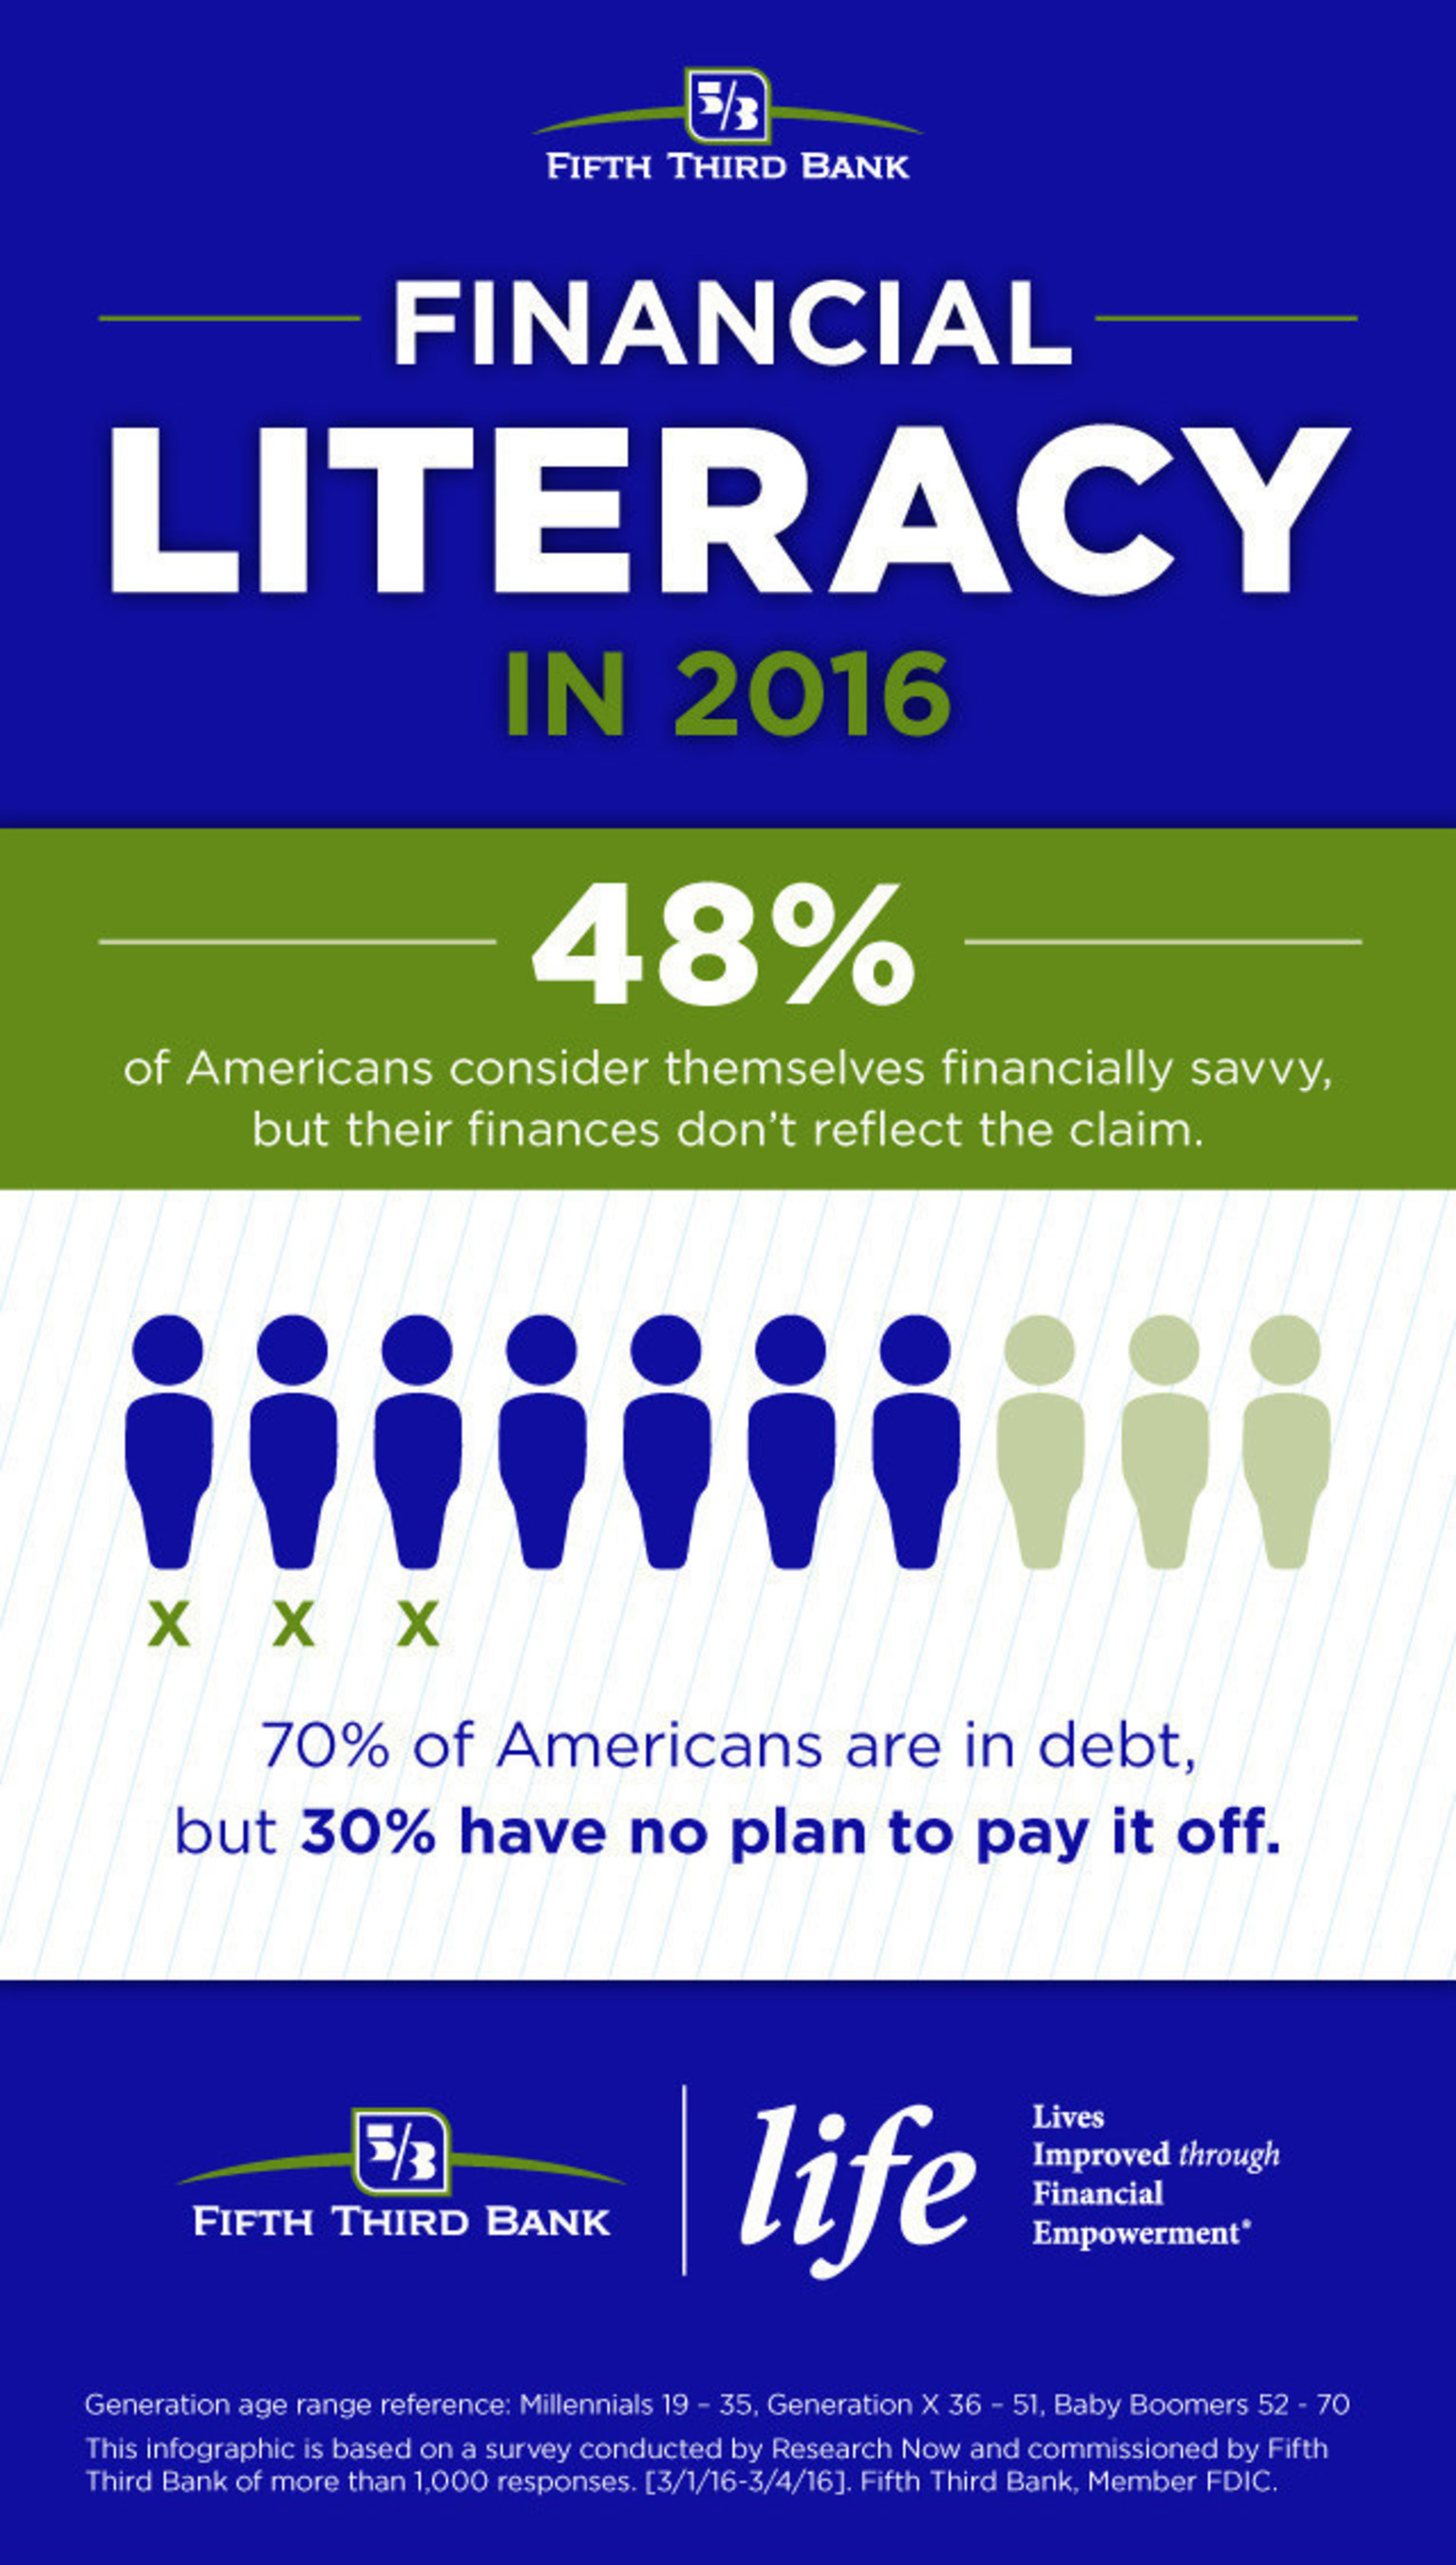 b6f7941ec Nearly half of Americans consider themselves financially savvy, but their  finances don't reflect